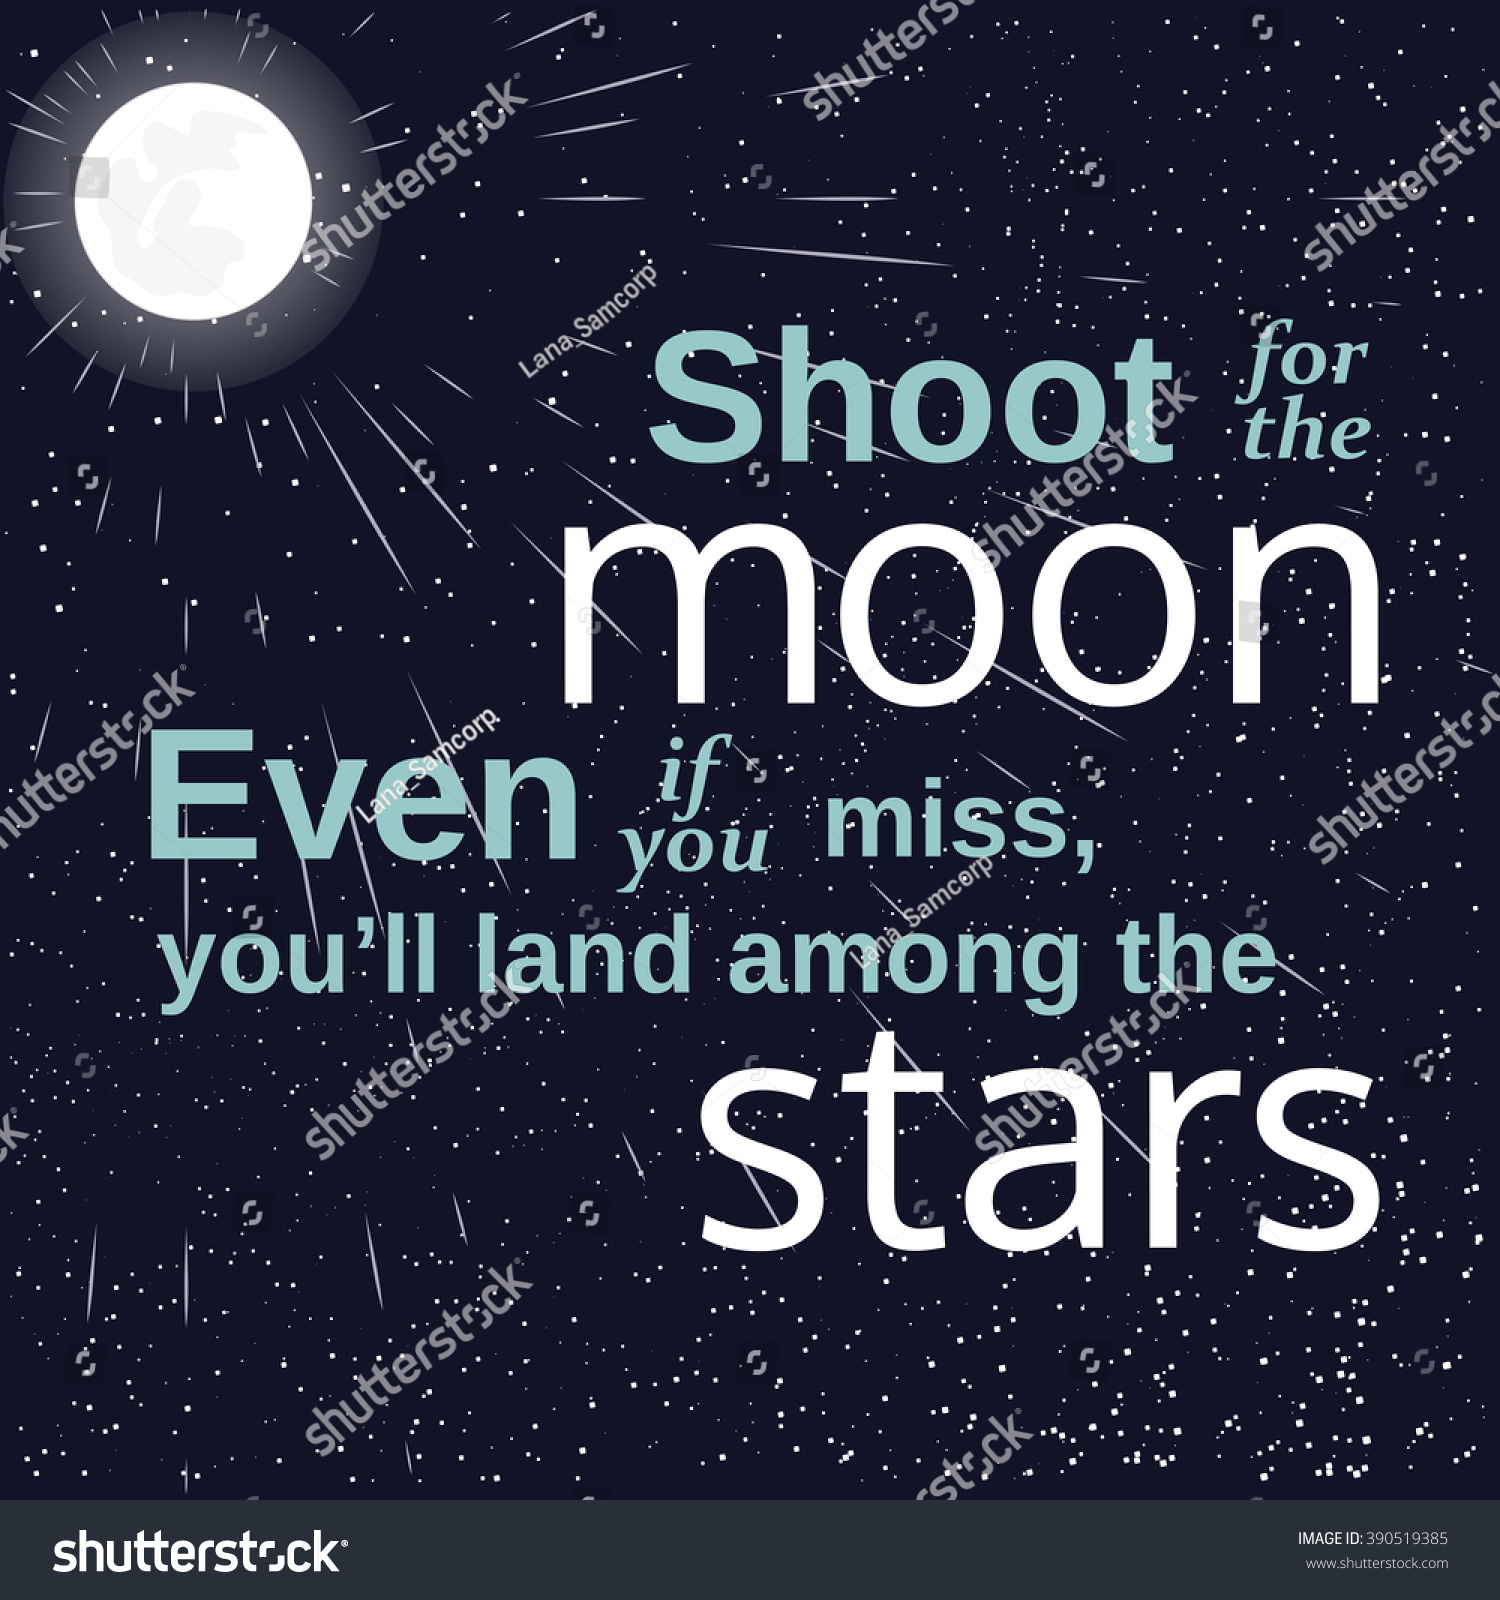 Inspirational Quotes On Pinterest: Inspiration Motivated Quote Shoot For The Moon Land Among